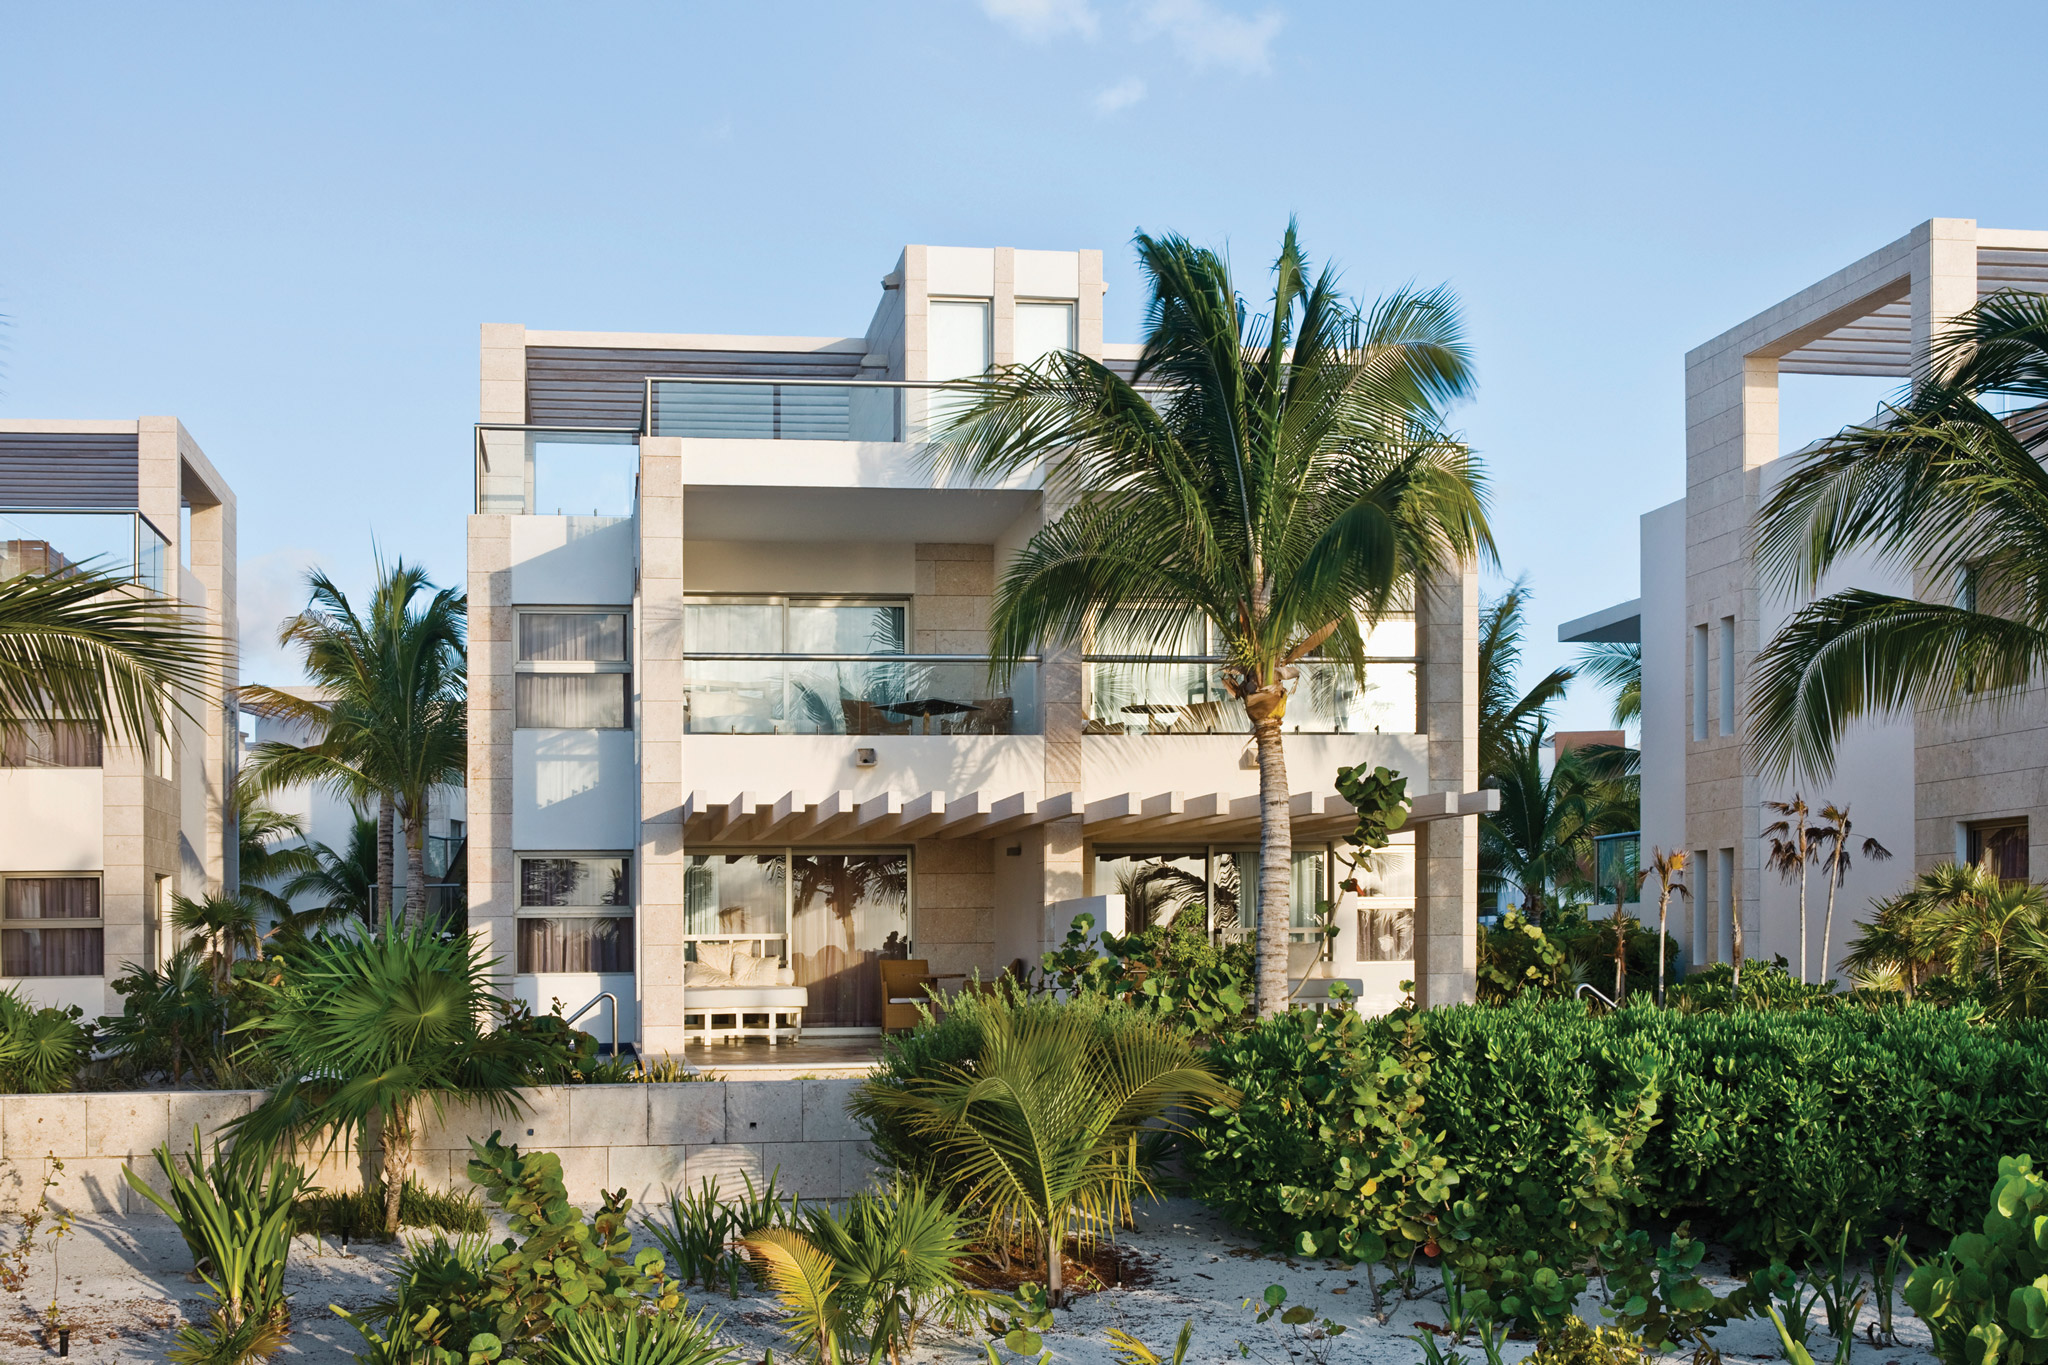 De Haute Qualite Inclusions Et Services Beloved Playa Mujeres By Excellence Group